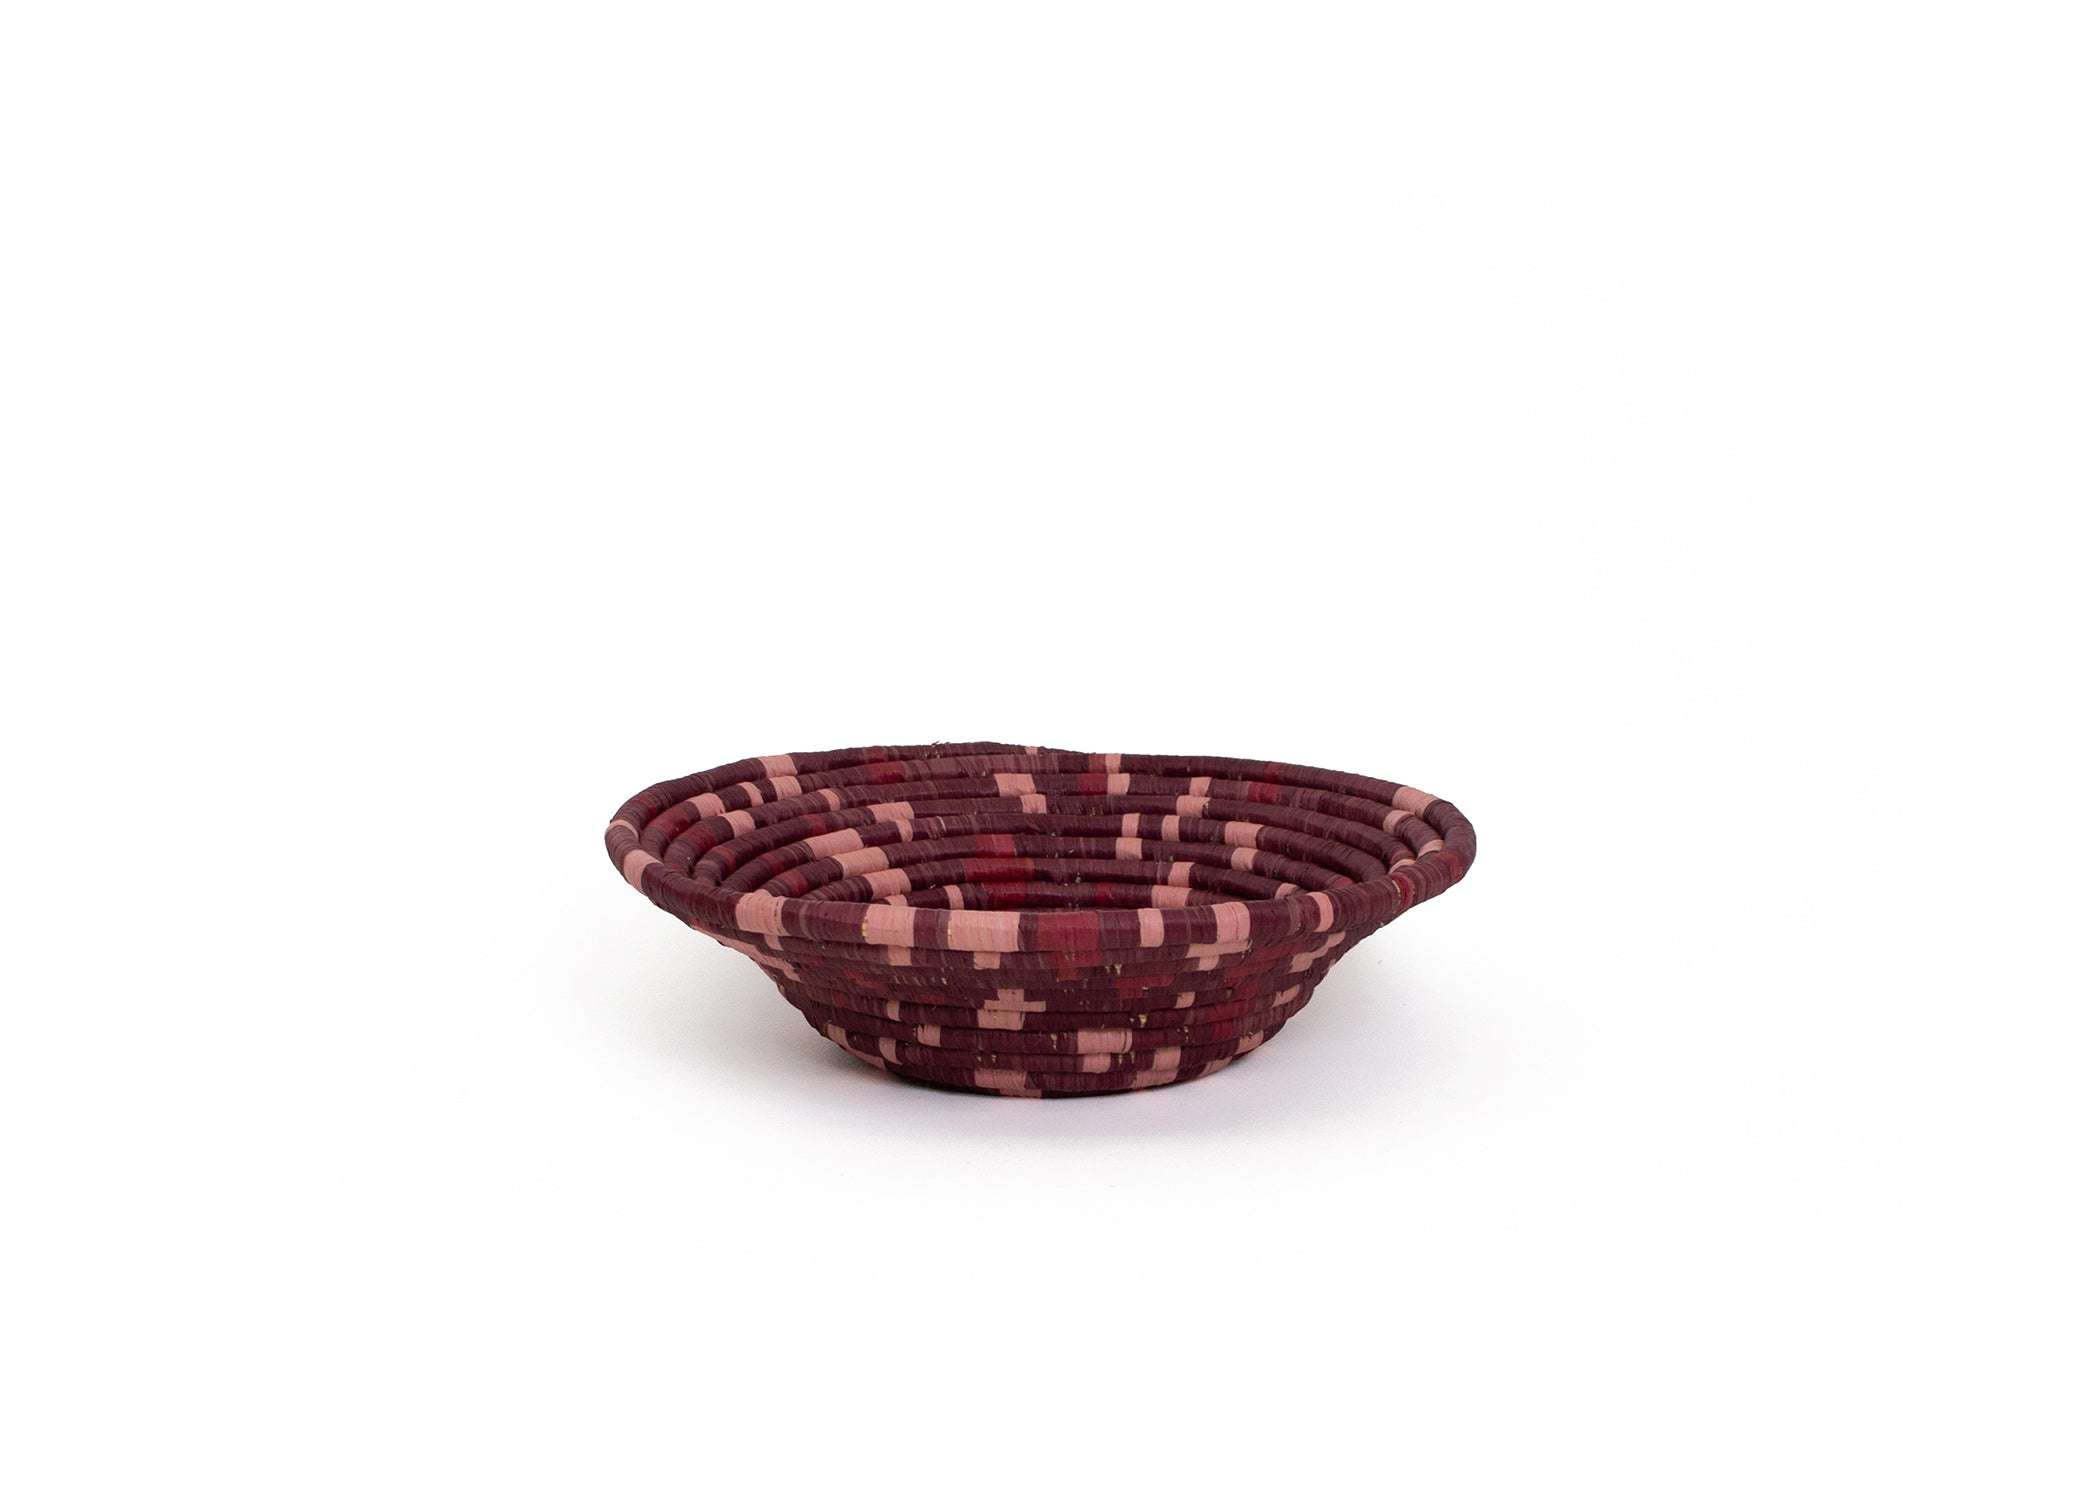 Burgundy Terrazzo Medium Bowl - KAZI - Artisan made high quality home decor and wall art